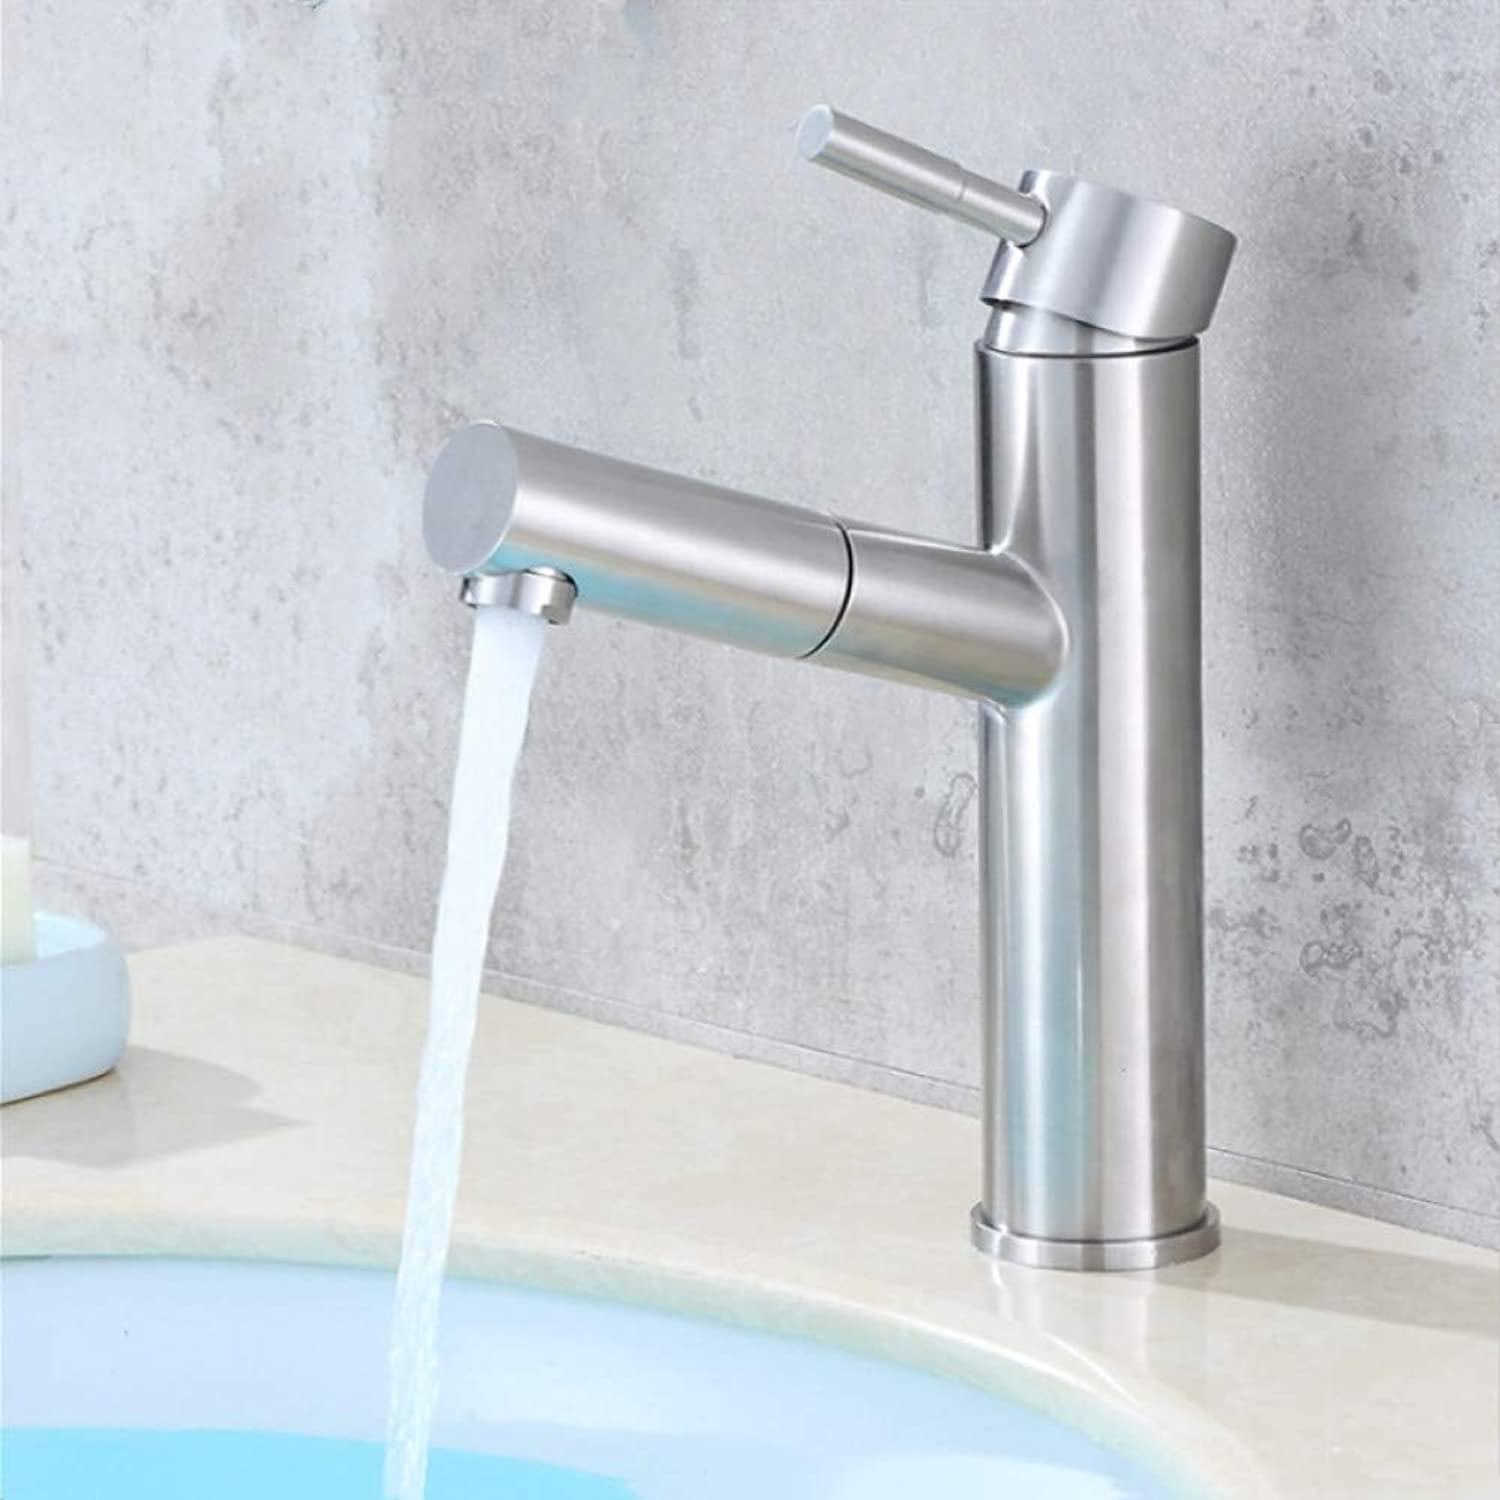 YHSGY Kitchen Taps Sus304 Stainless Steel Pull-Out Kitchen Basin Hot and Cold Water Faucet Tap